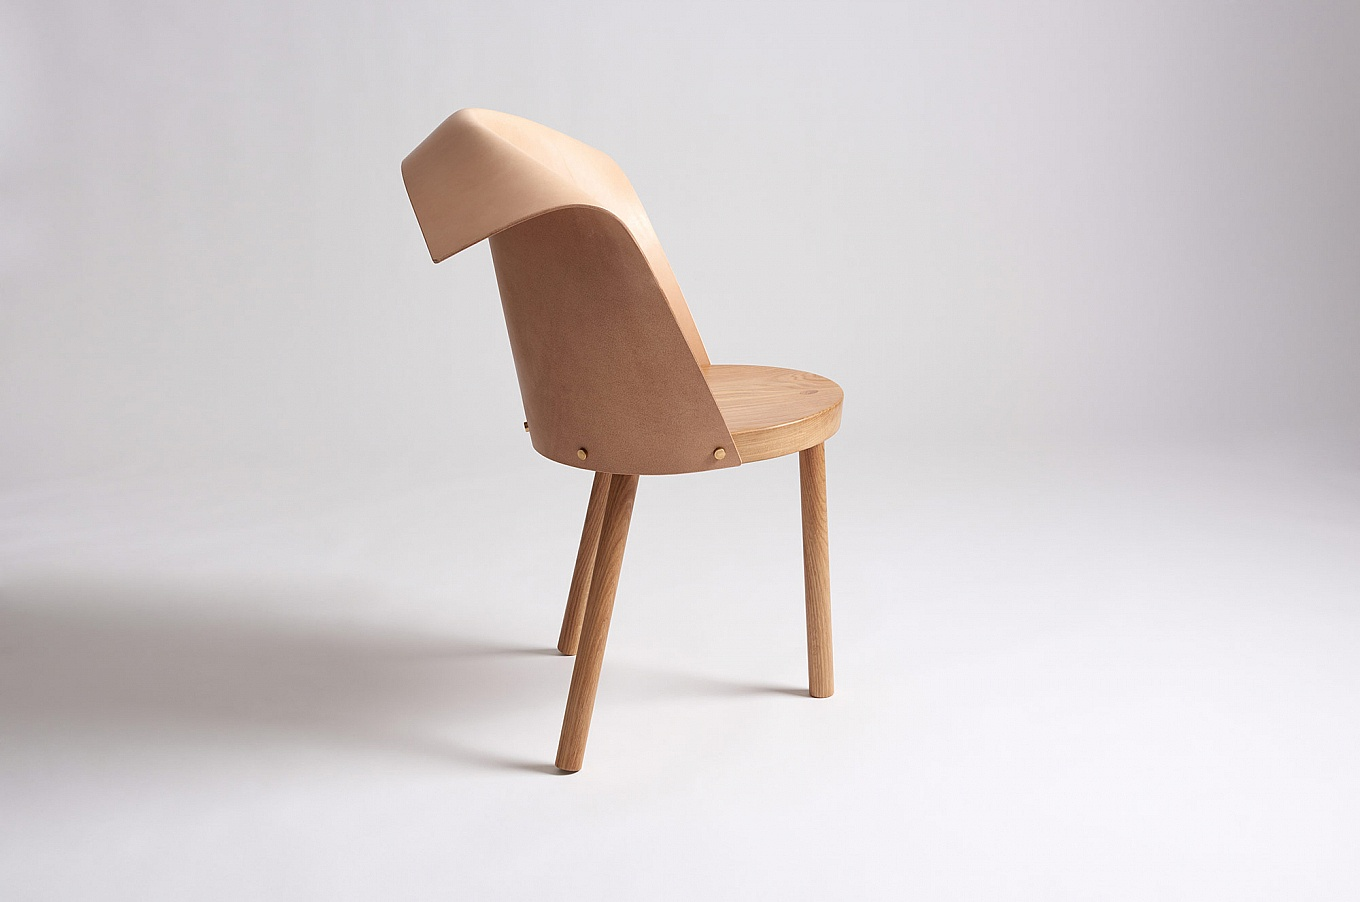 babu-and-clop-chairs-by-toru-gessato-2-1360x902